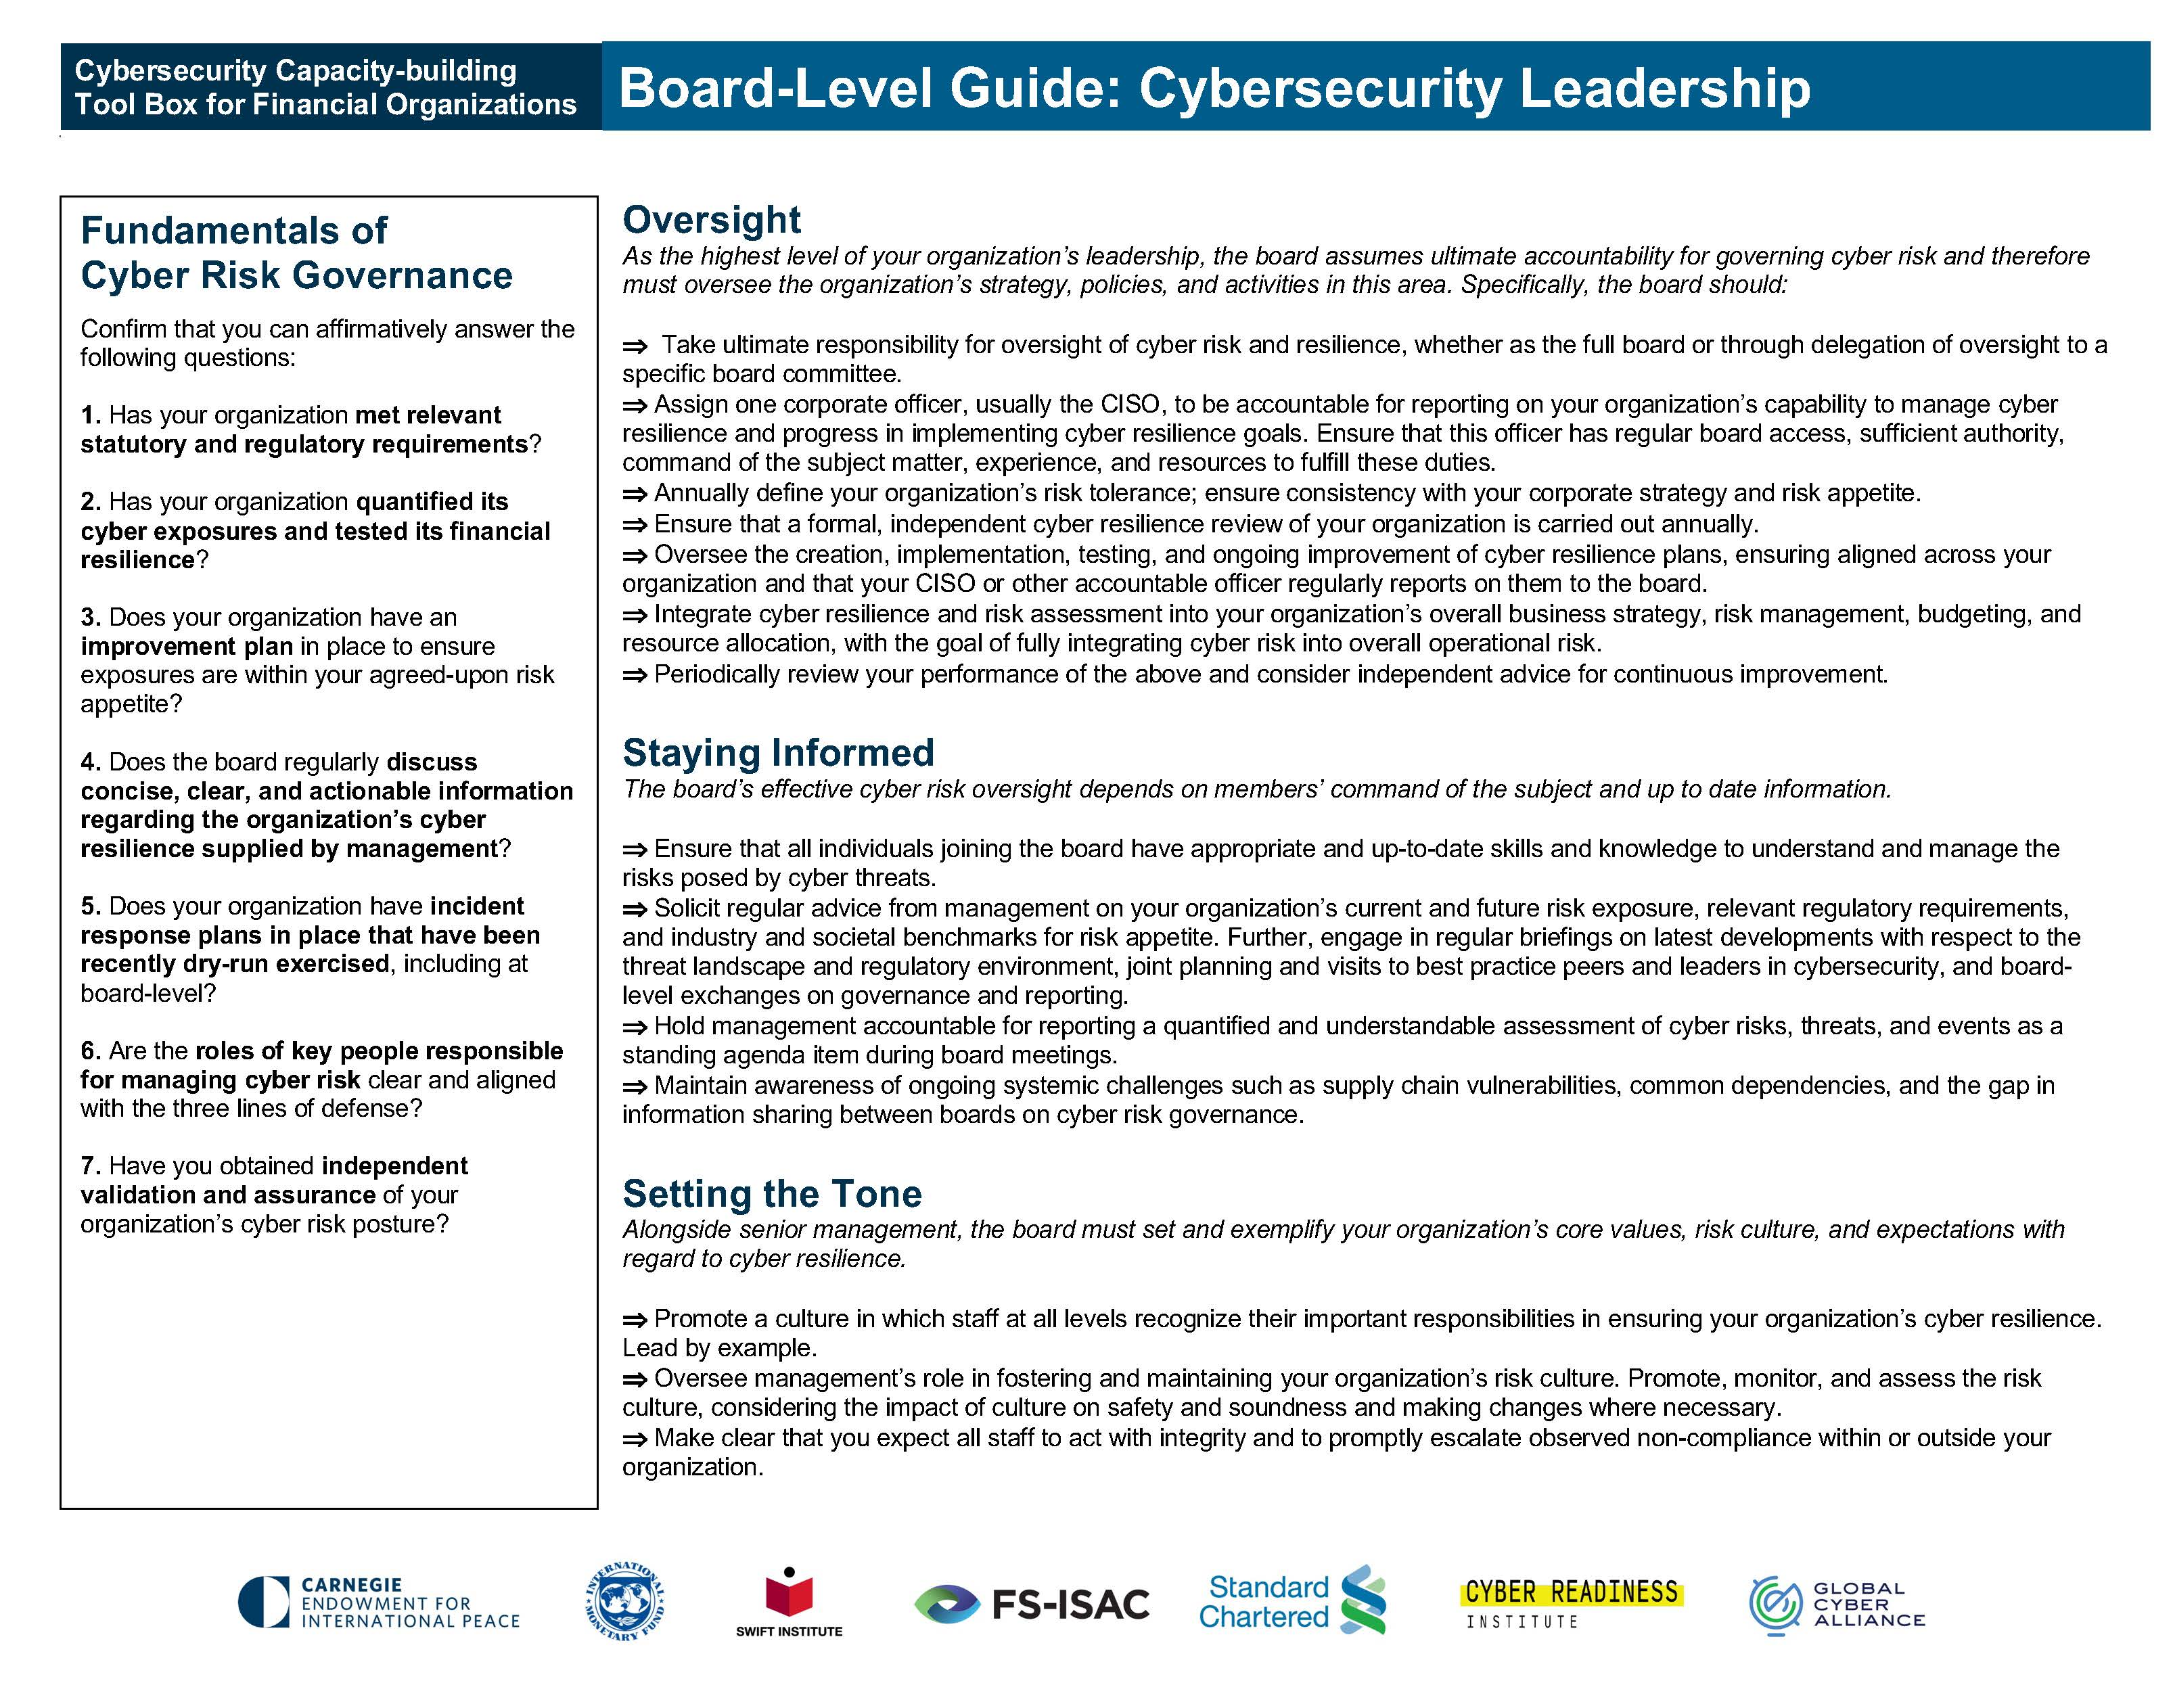 Board Level Guide Cybersecurity Leadership